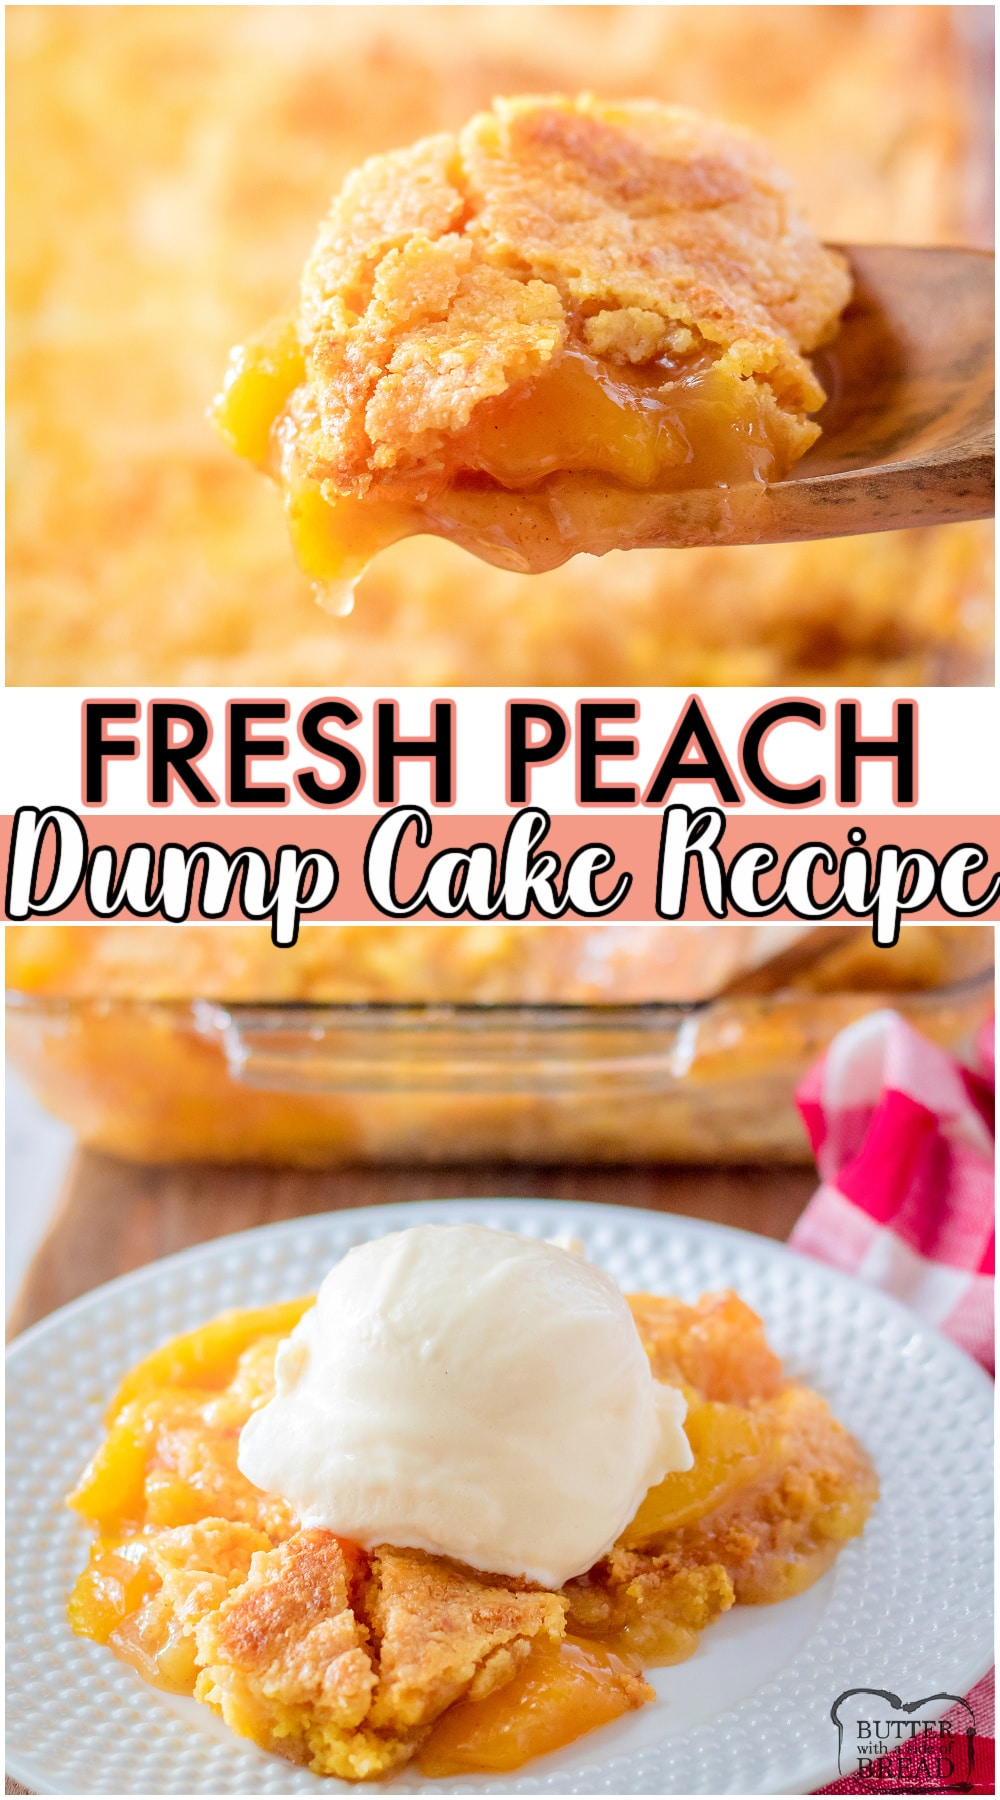 Fabulous Peach Dump Cake recipe made with spiced peaches, a cake mix and BUTTER for a super easy, delicious dessert. Just 4 ingredients & a few minutes of prep and you're on your way to this dreamy peach cobbler.  #peach #cobbler #dumpcake #peaches #baking #easyrecipe from BUTTER WITH A SIDE OF BREAD